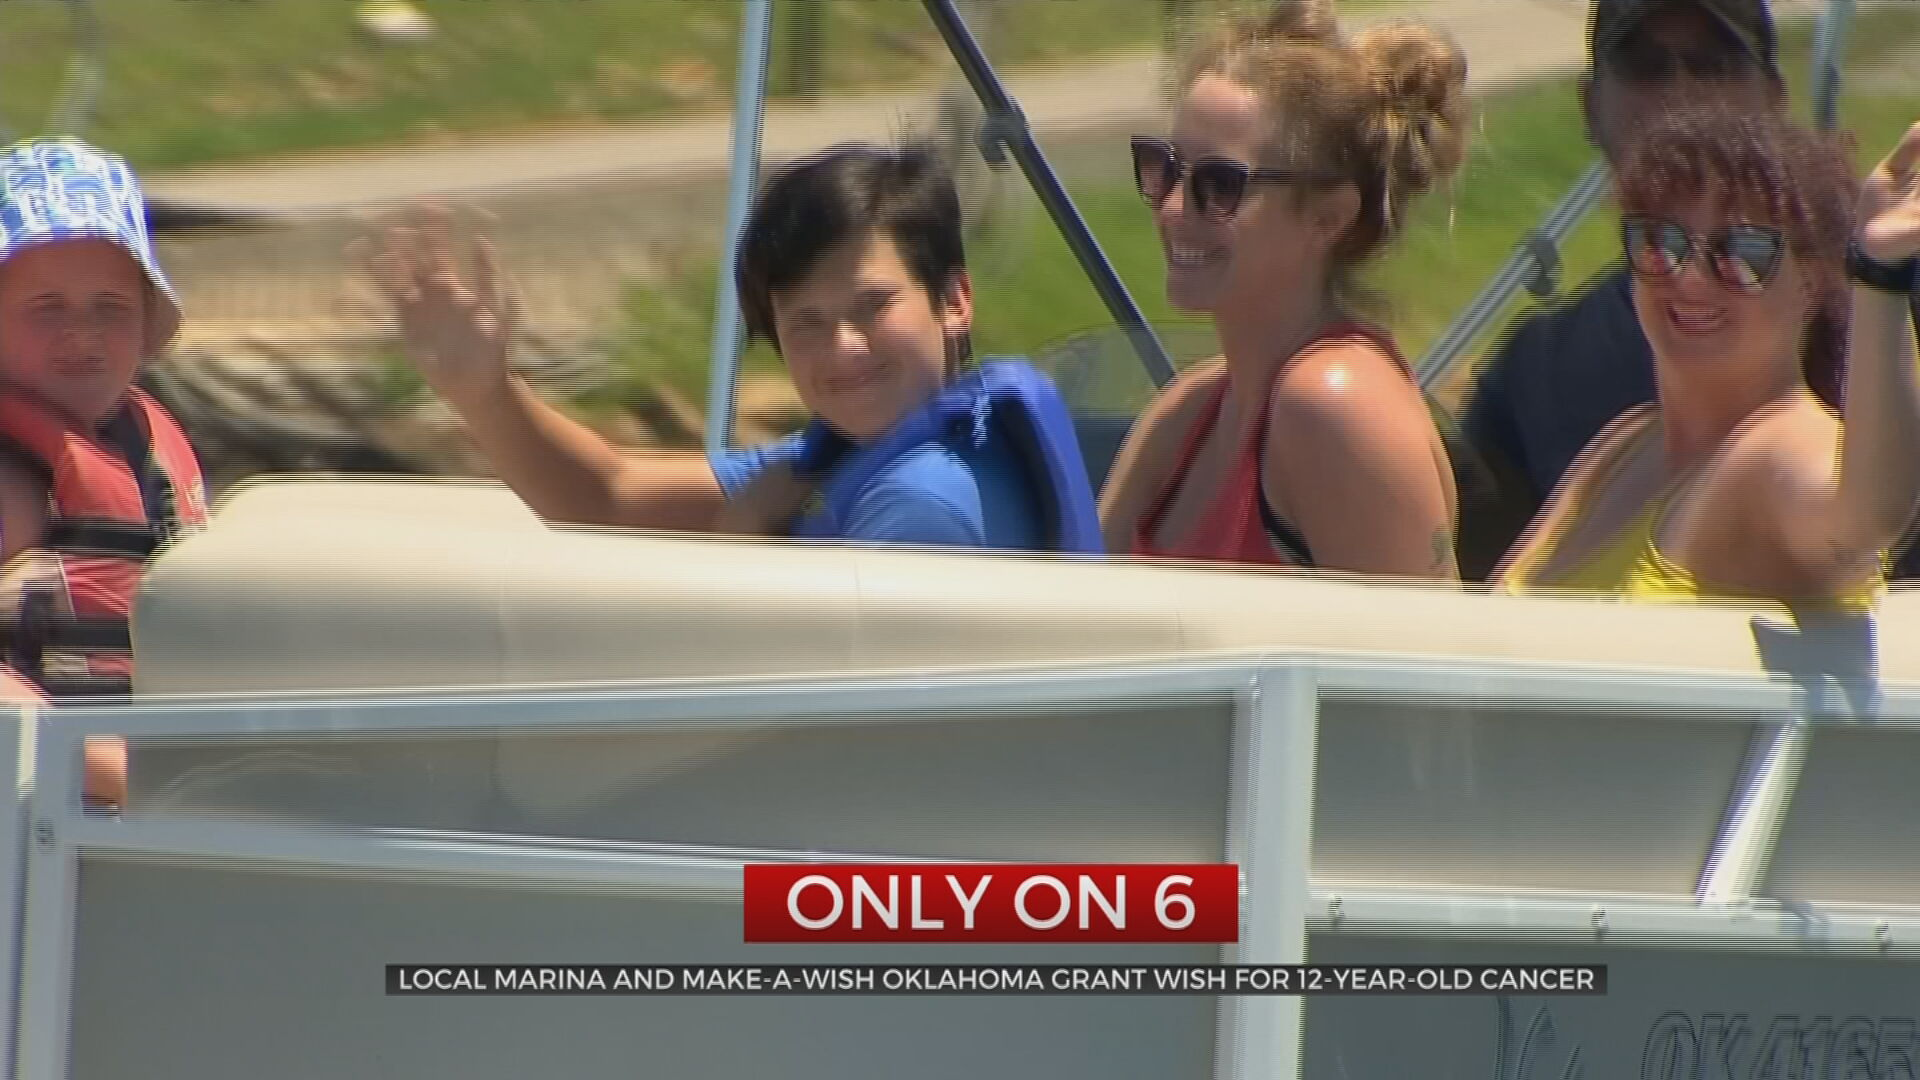 Local Marina, Make-A-Wish Oklahoma Grant Wish For Tulsa 12-Year-Old Cancer Patient